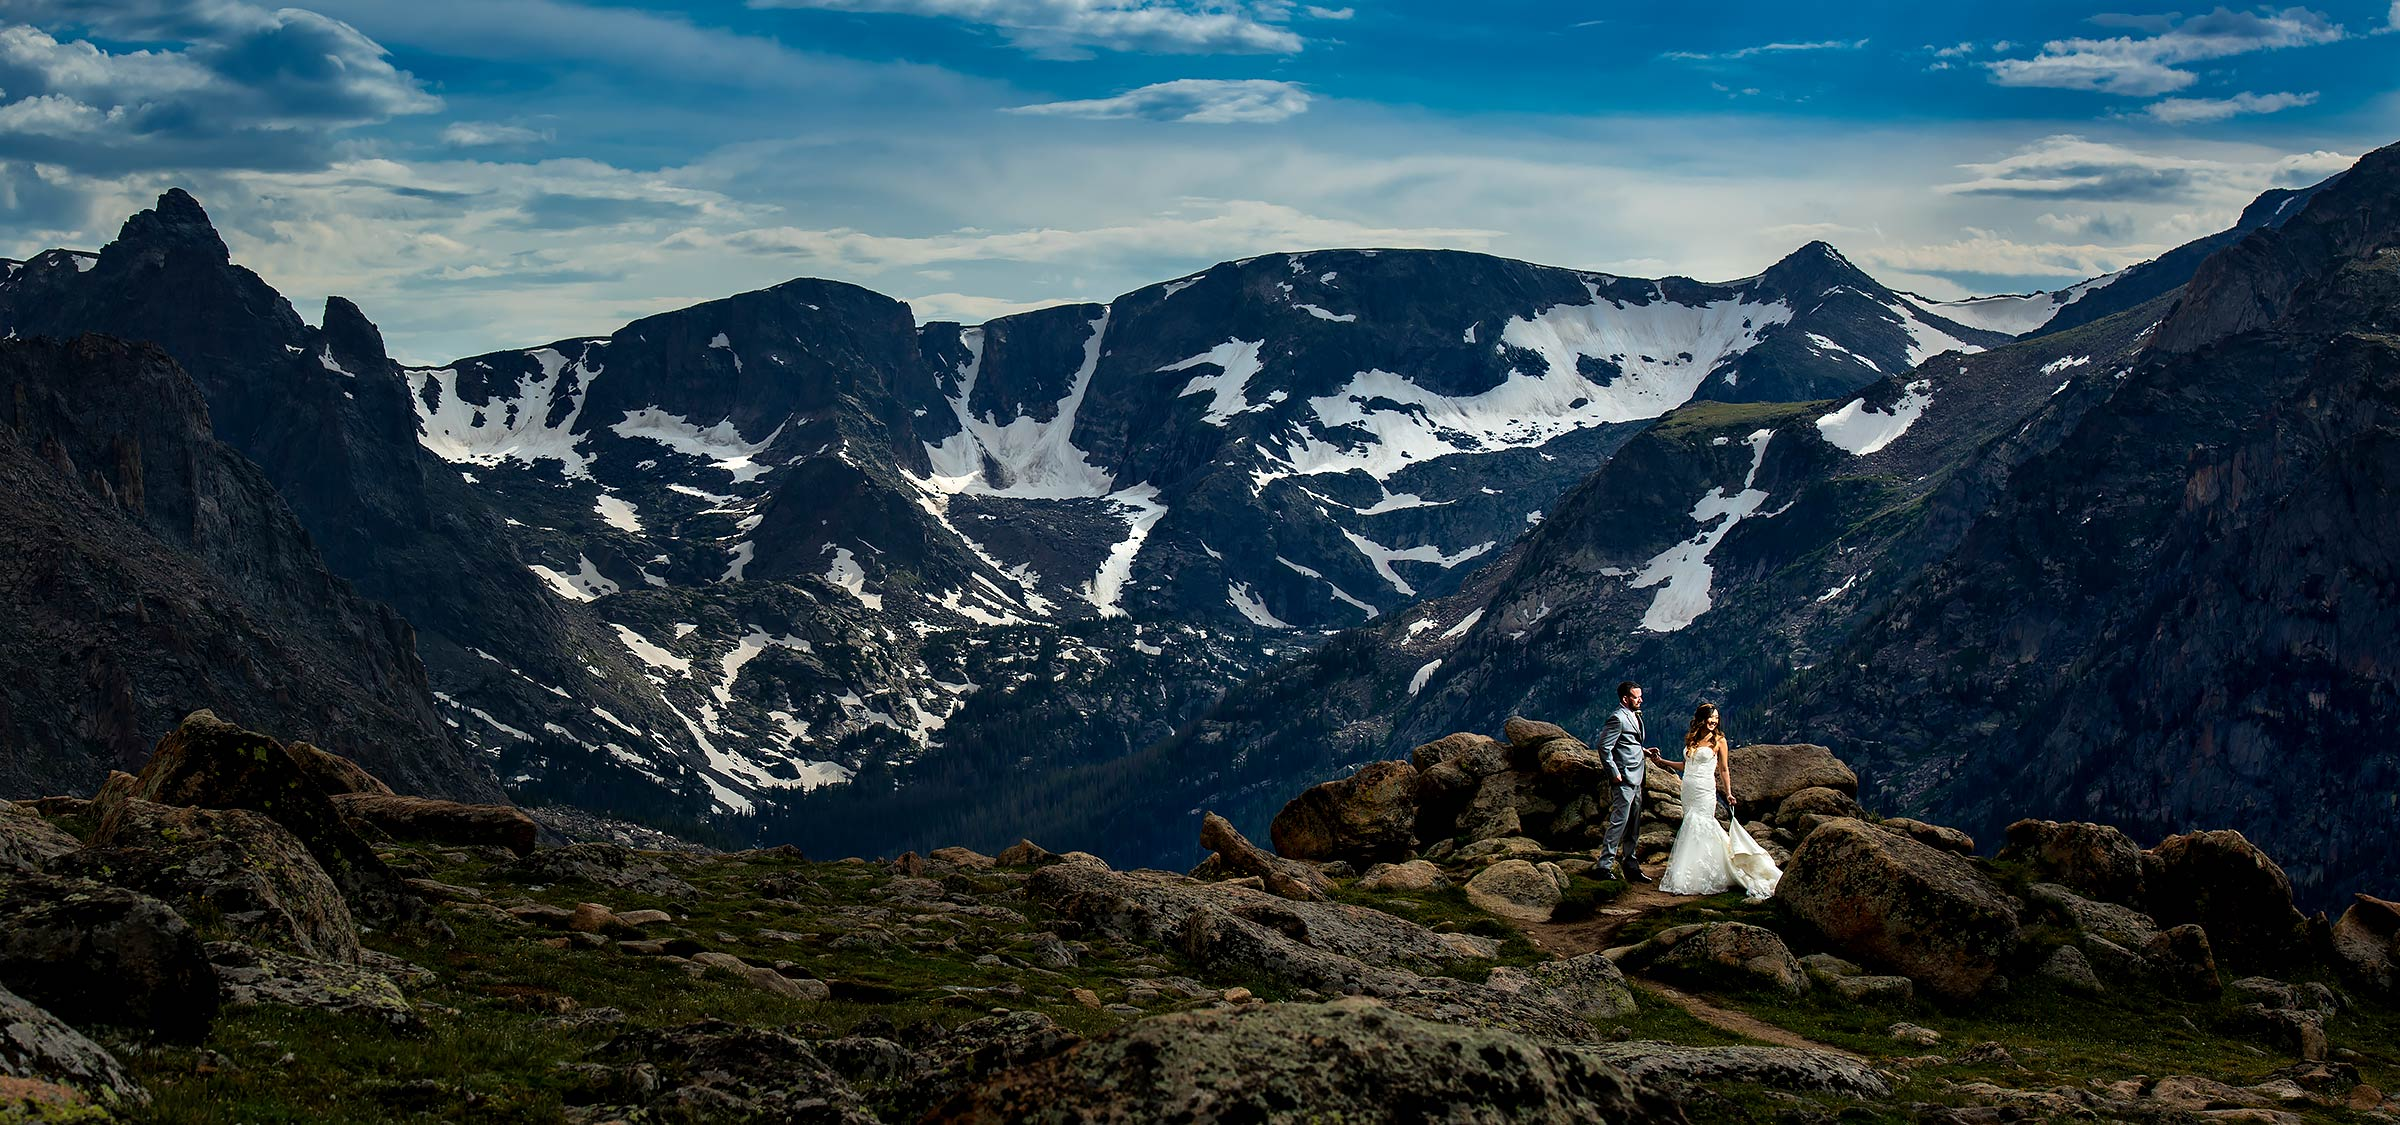 Cool Mountain Wedding Photo | Black Canyon Inn Wedding | Estes Park Wedding Photographers | J. La Plante Photo